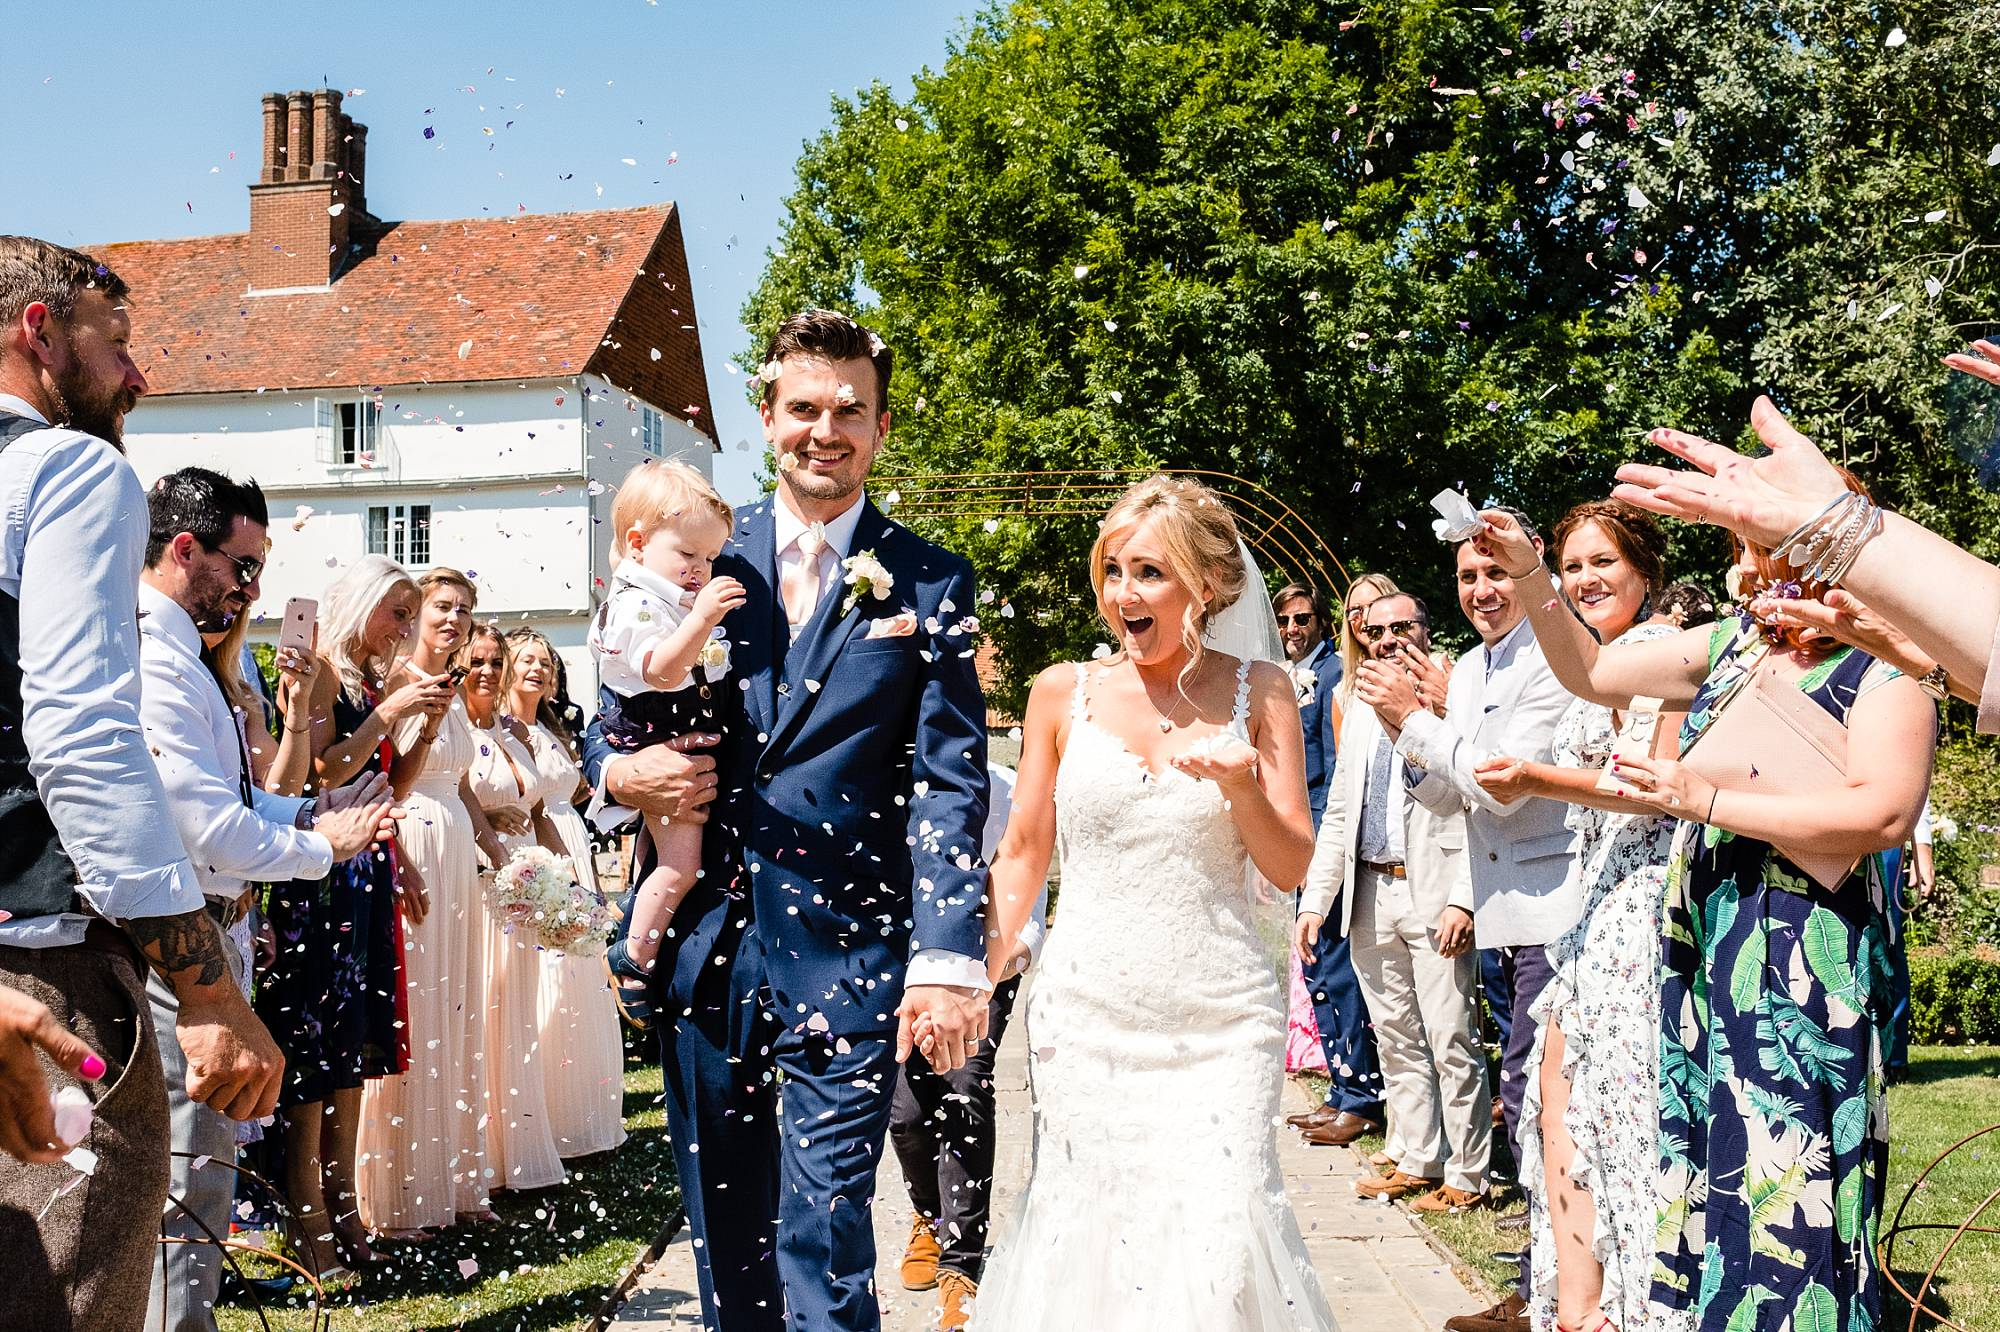 Houchins Essex Wedding Photographer_0045.jpg